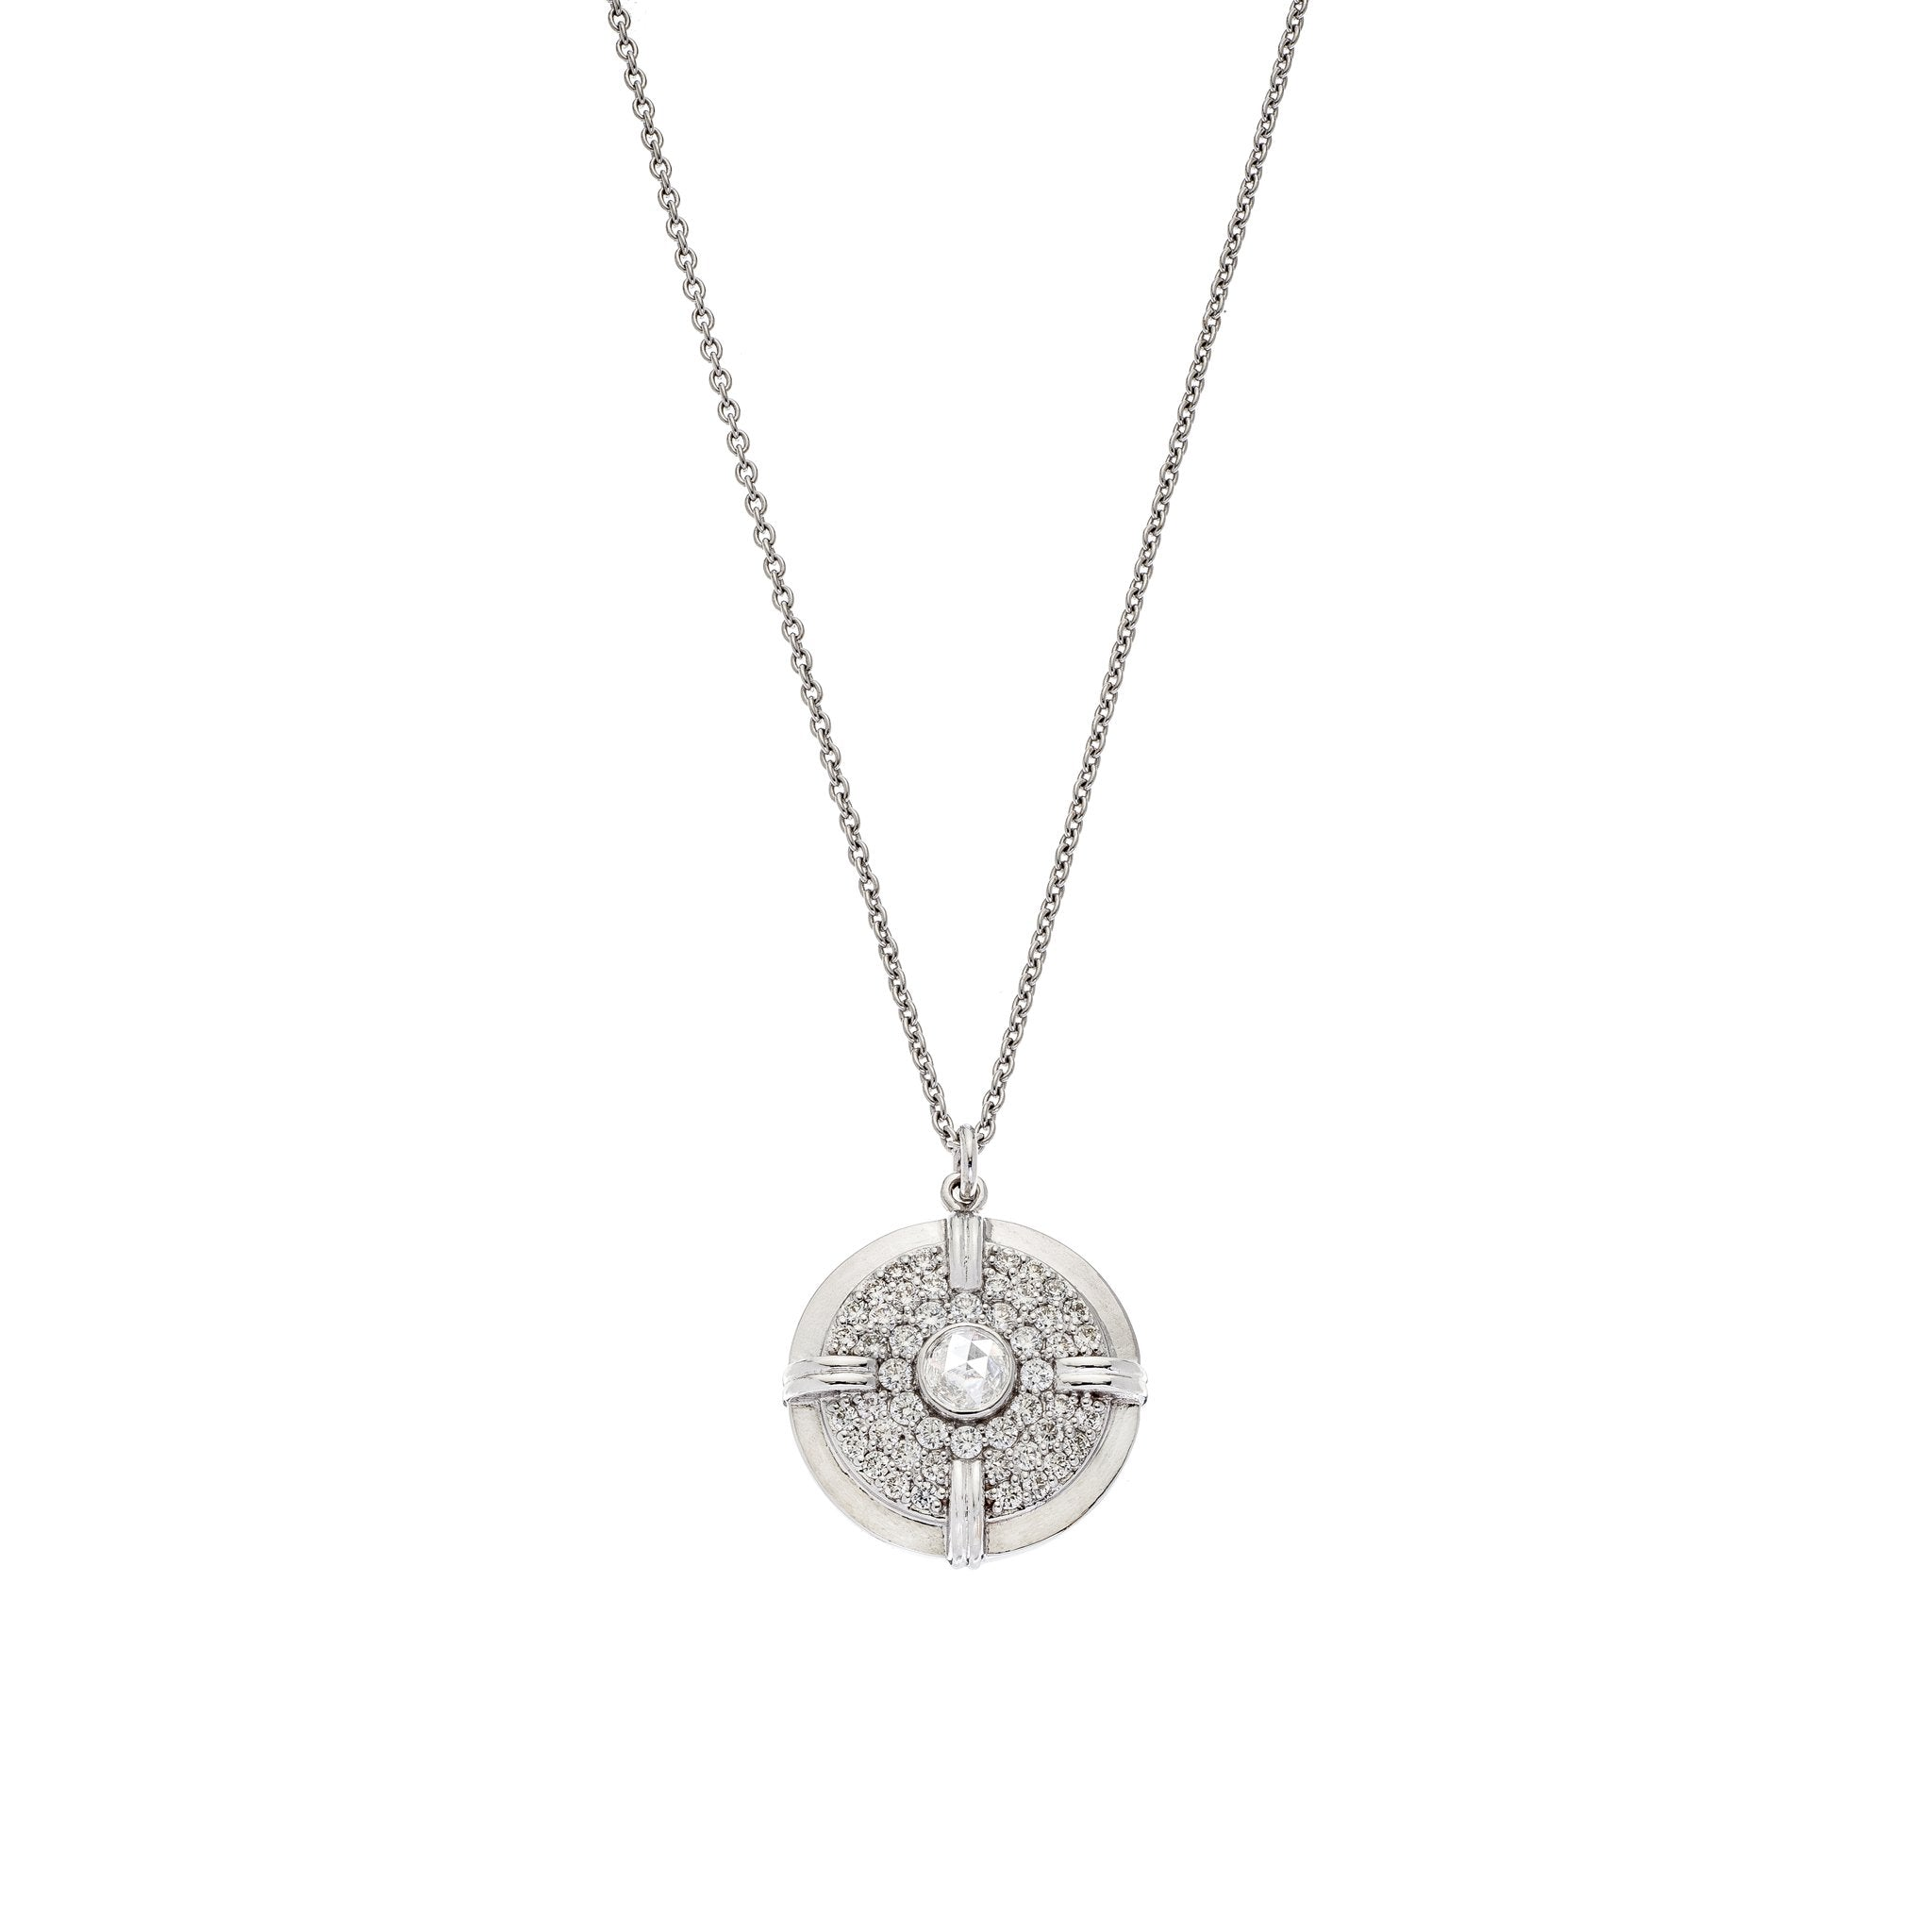 The Nora Necklace